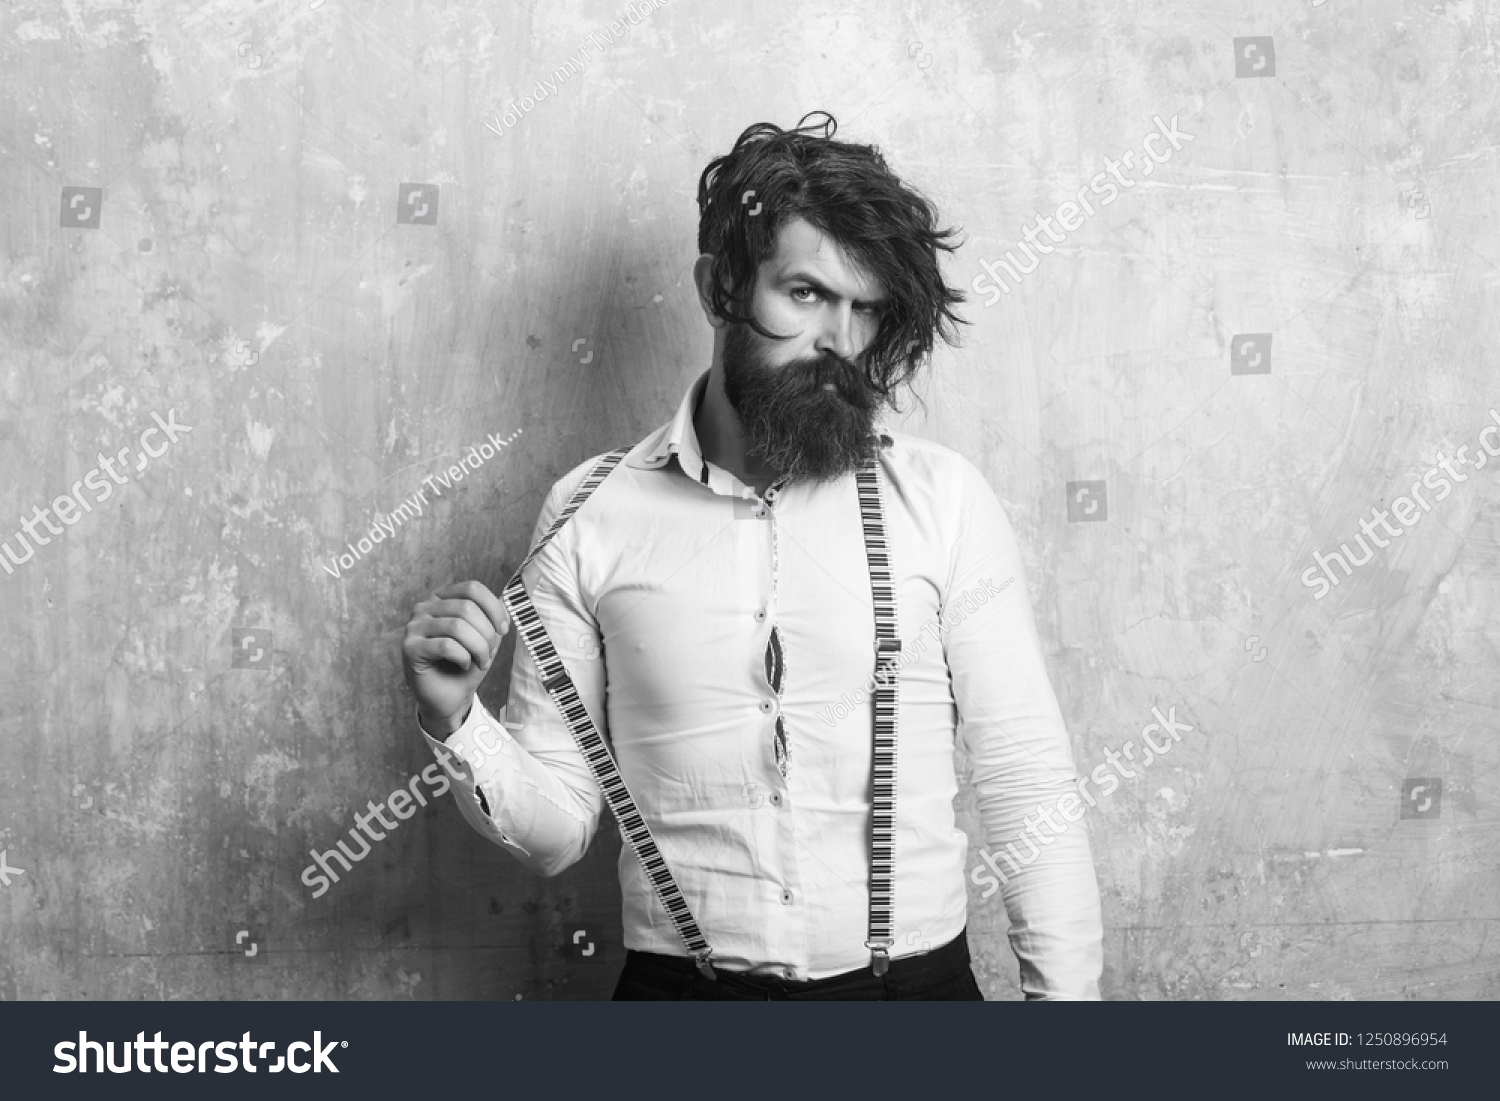 Business fashion and beauty. Fashion model with stylish hair. Guy or businessman at textured wall. Man with long beard and mustache on face. Hipster in shirt and suspenders. #1250896954